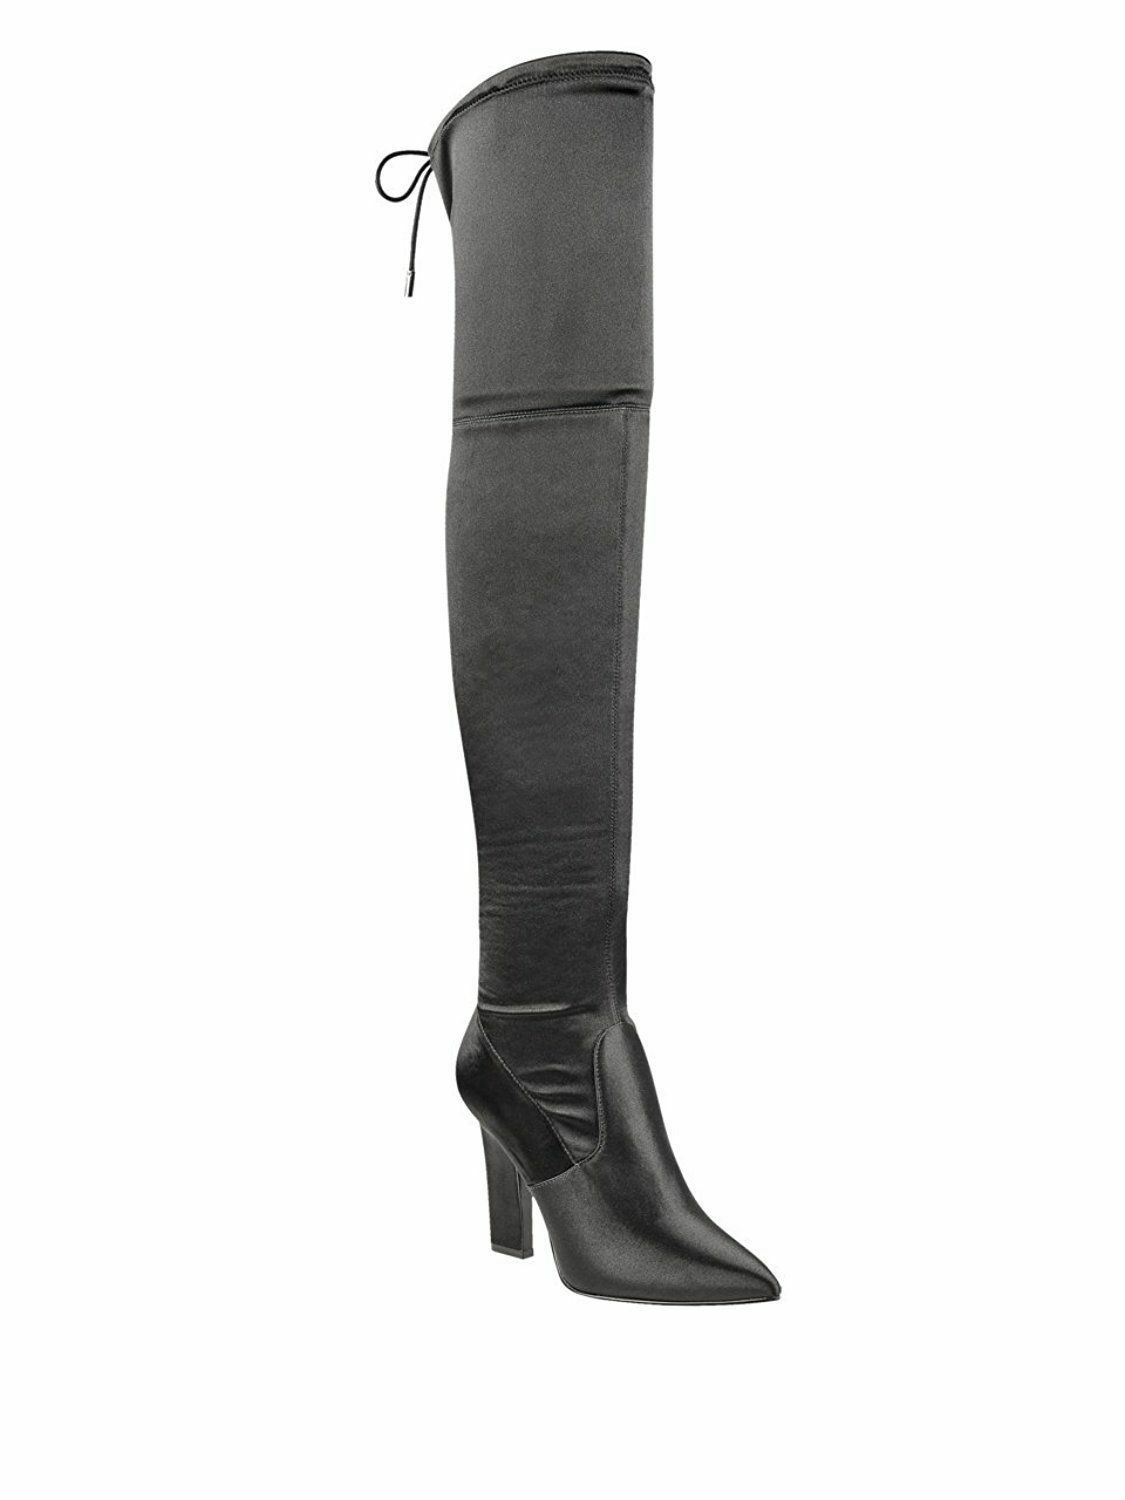 Guess Angeley 9.5 M Fabric Knee High High High Party Boots Block Heel Glamour Pointed Toe b8307f